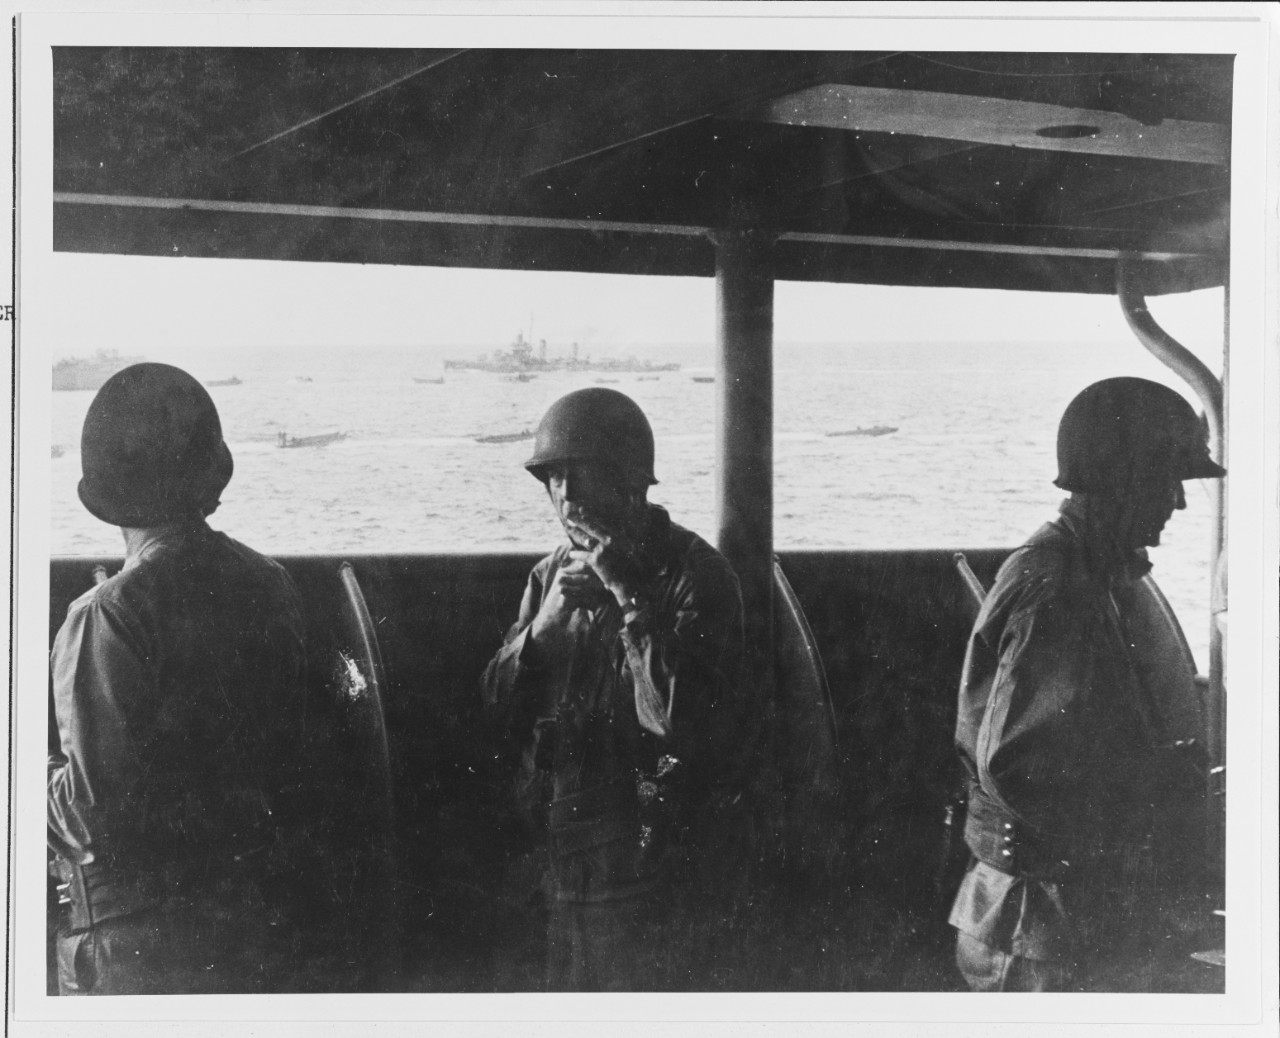 Photo #: 80-G-31372  Guadalcanal-Tulagi Operation, 7-9 August 1942